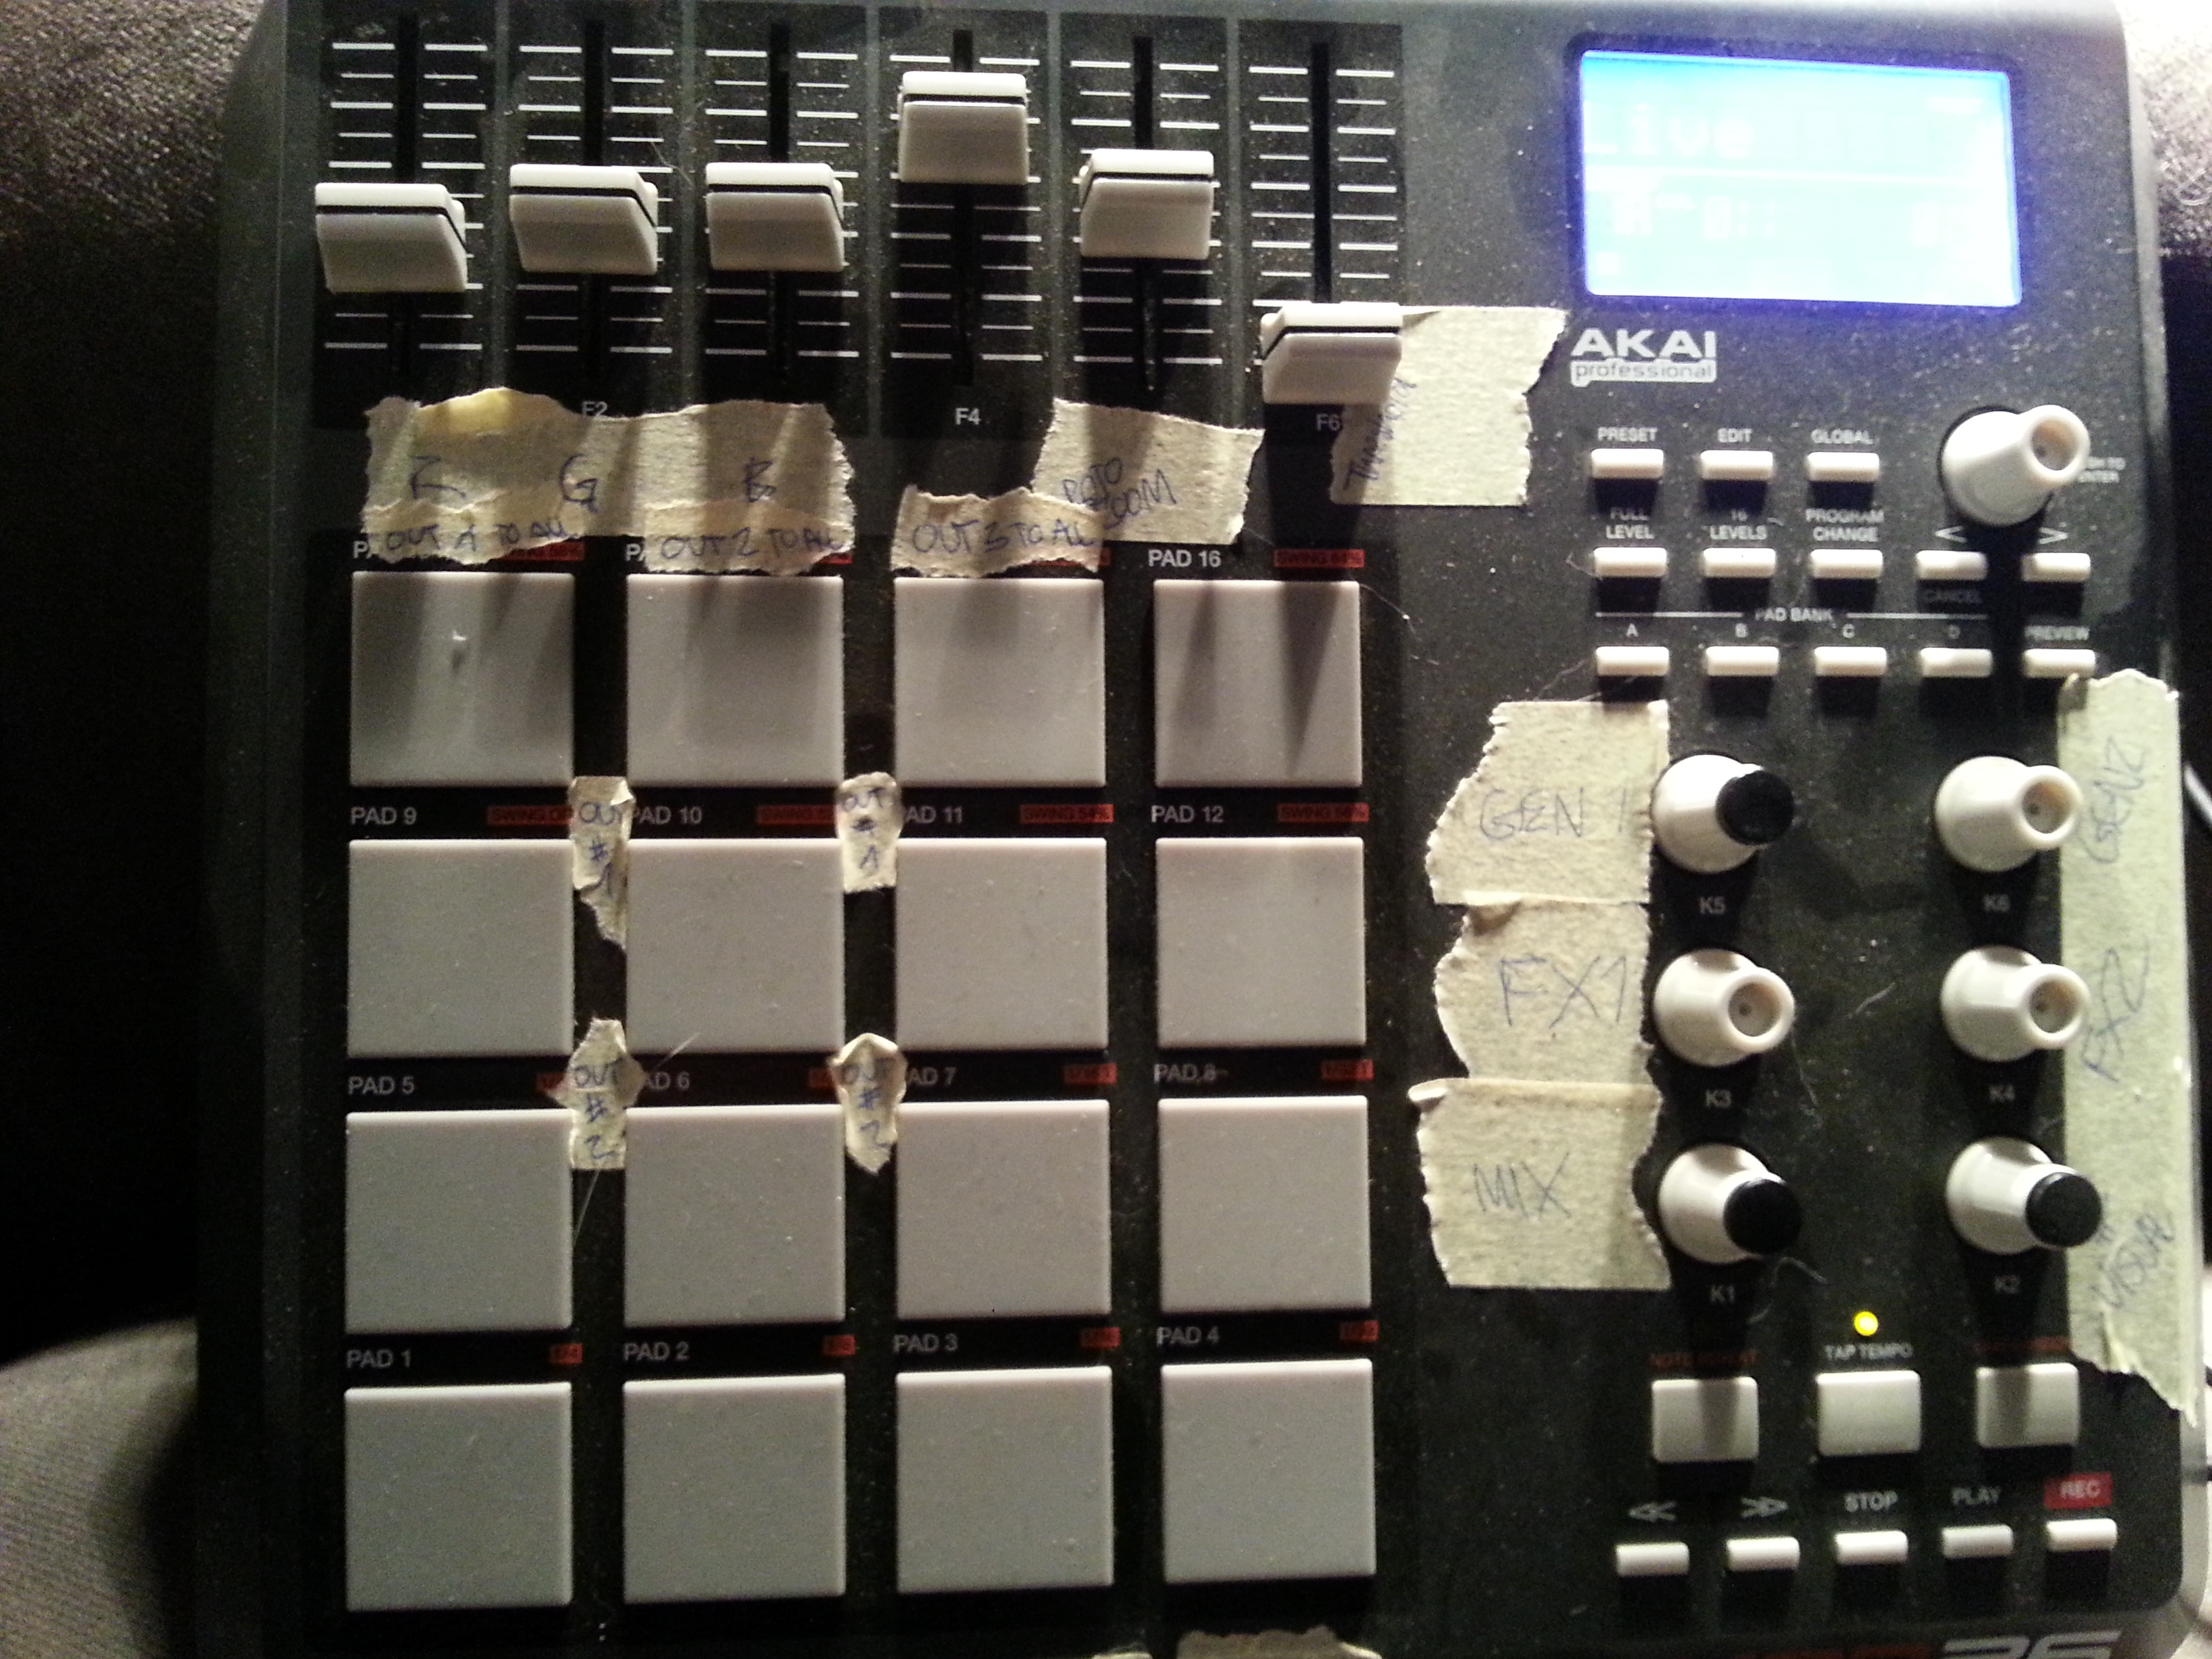 PixelController Tutorial: Use a Midi device to control PixelController